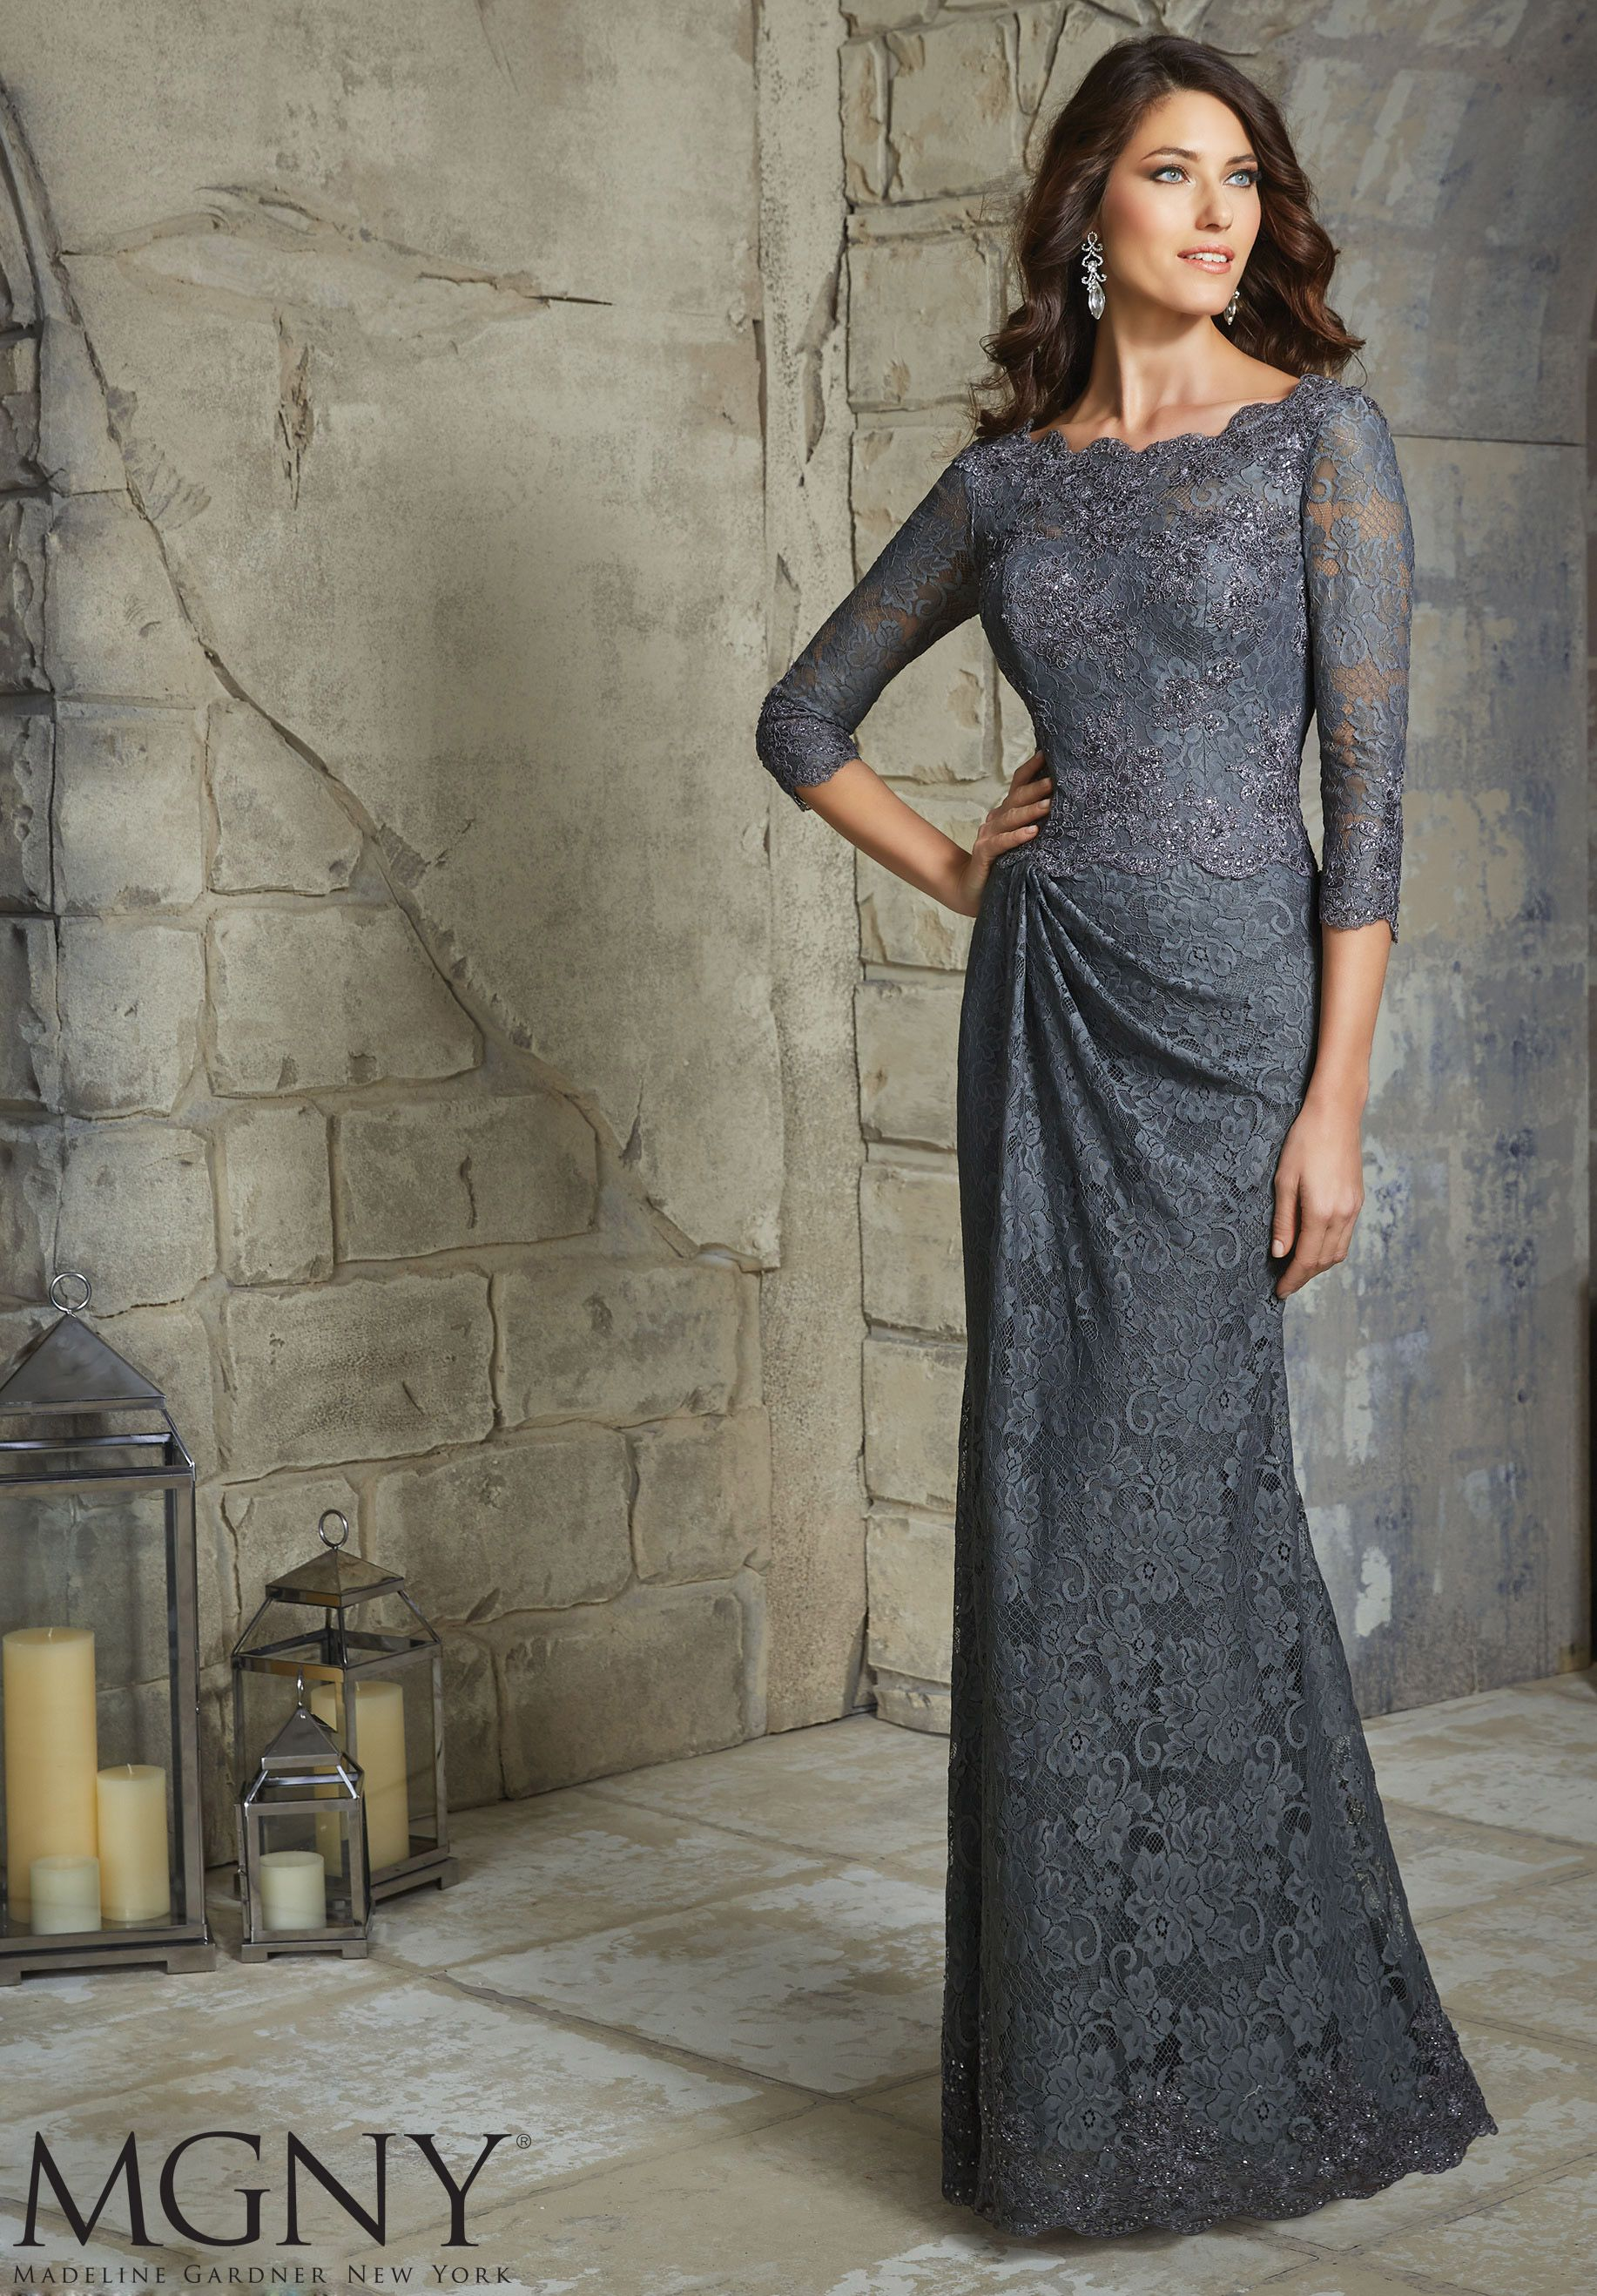 d13a1e53a57 Beaded Appliques on Allover Lace Evening Gown Mother of the Bride Dress by  Madeline Gardner. Colors available  Charcoal and Navy.